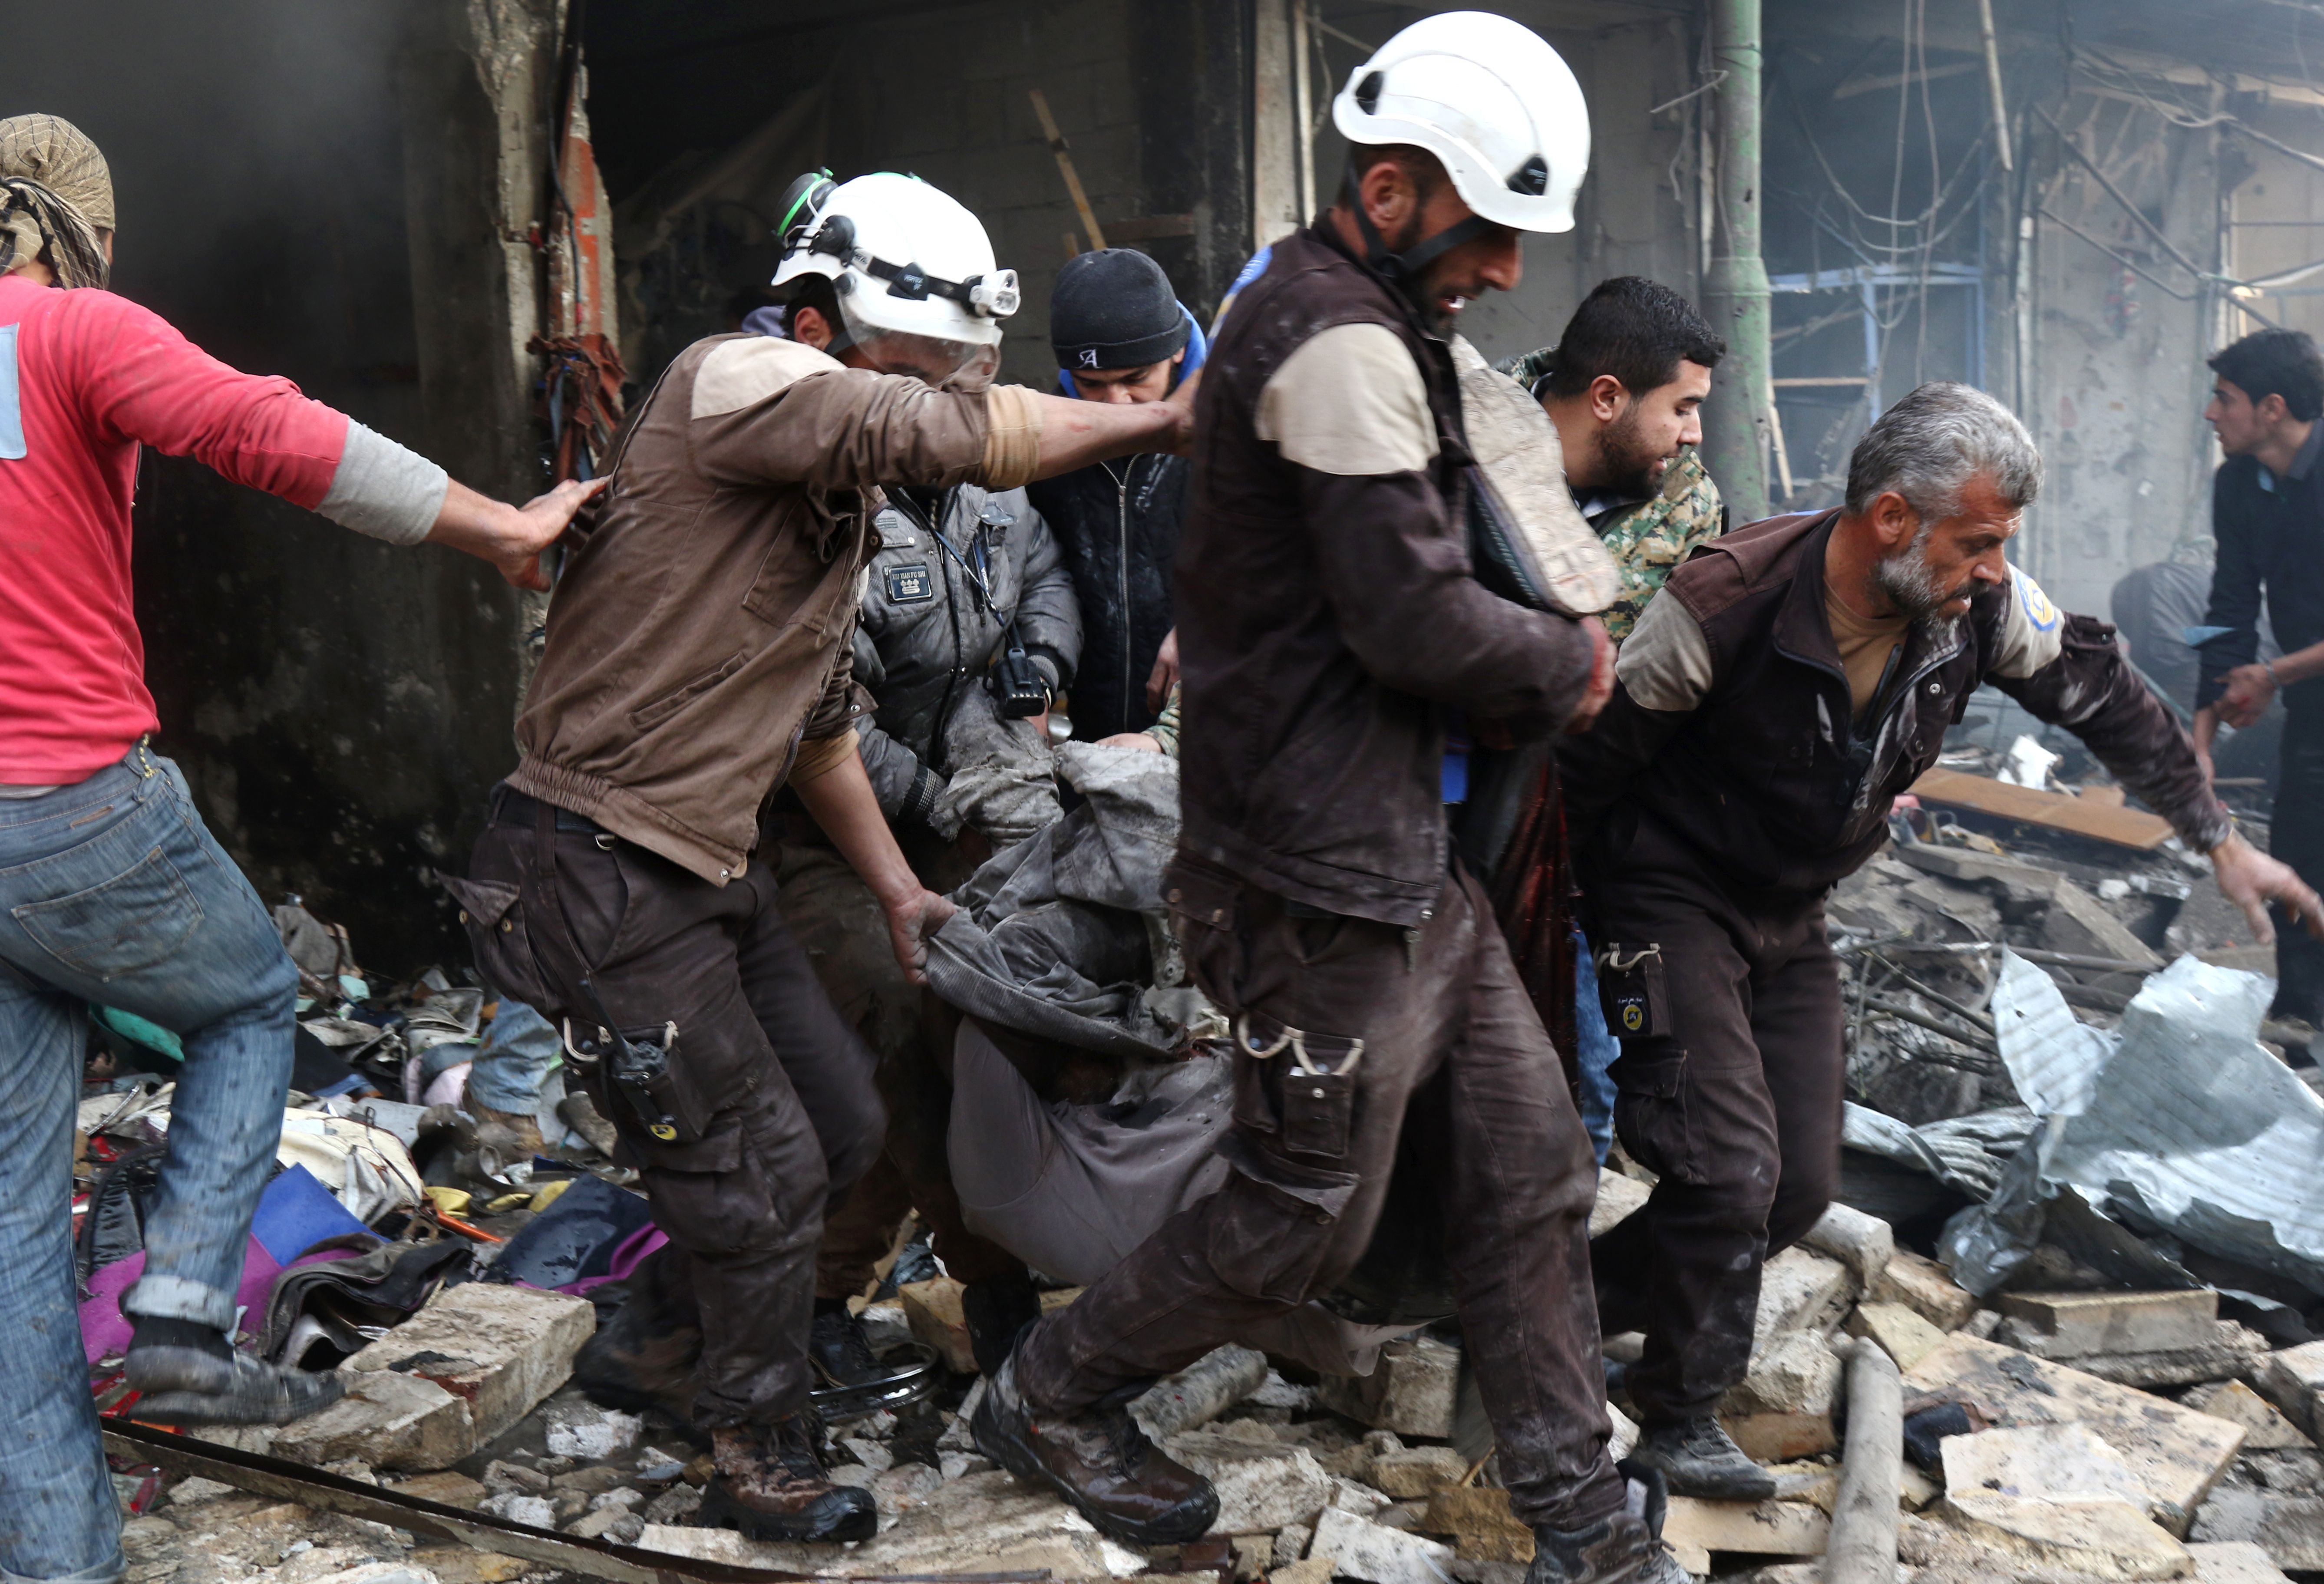 Syrian Civil Defence volunteers, also known as the White Helmets, evacuate a victim from a building following an air strike on the village of Maaret al-Numan, in the country's northern province of Idlib, on Dec. 4, 2016.